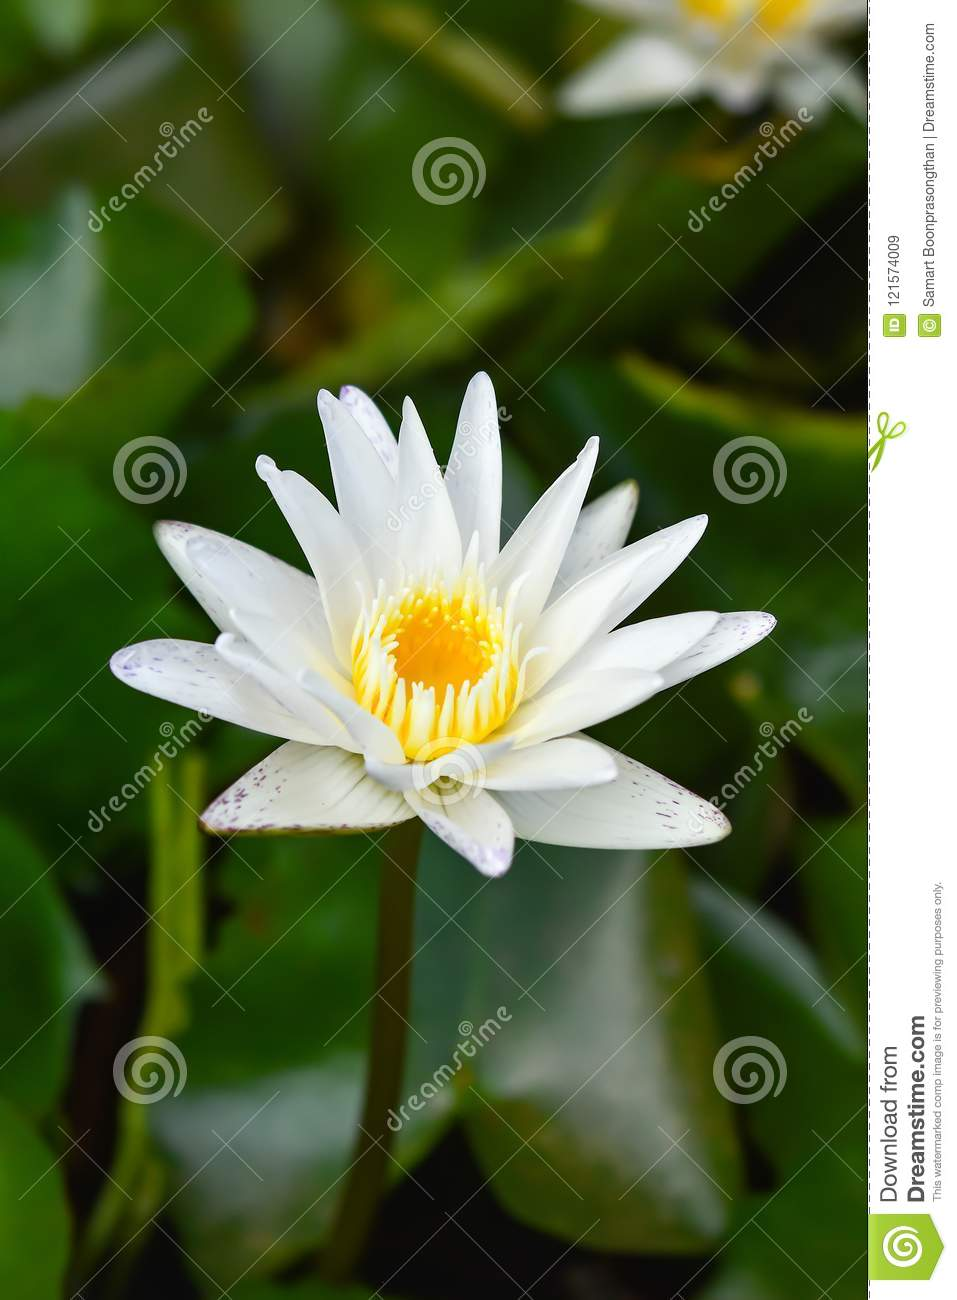 White lotus flower in the lotus pond at the samut songkhram stock white lotus flower in the lotus pond at the samut songkhram izmirmasajfo